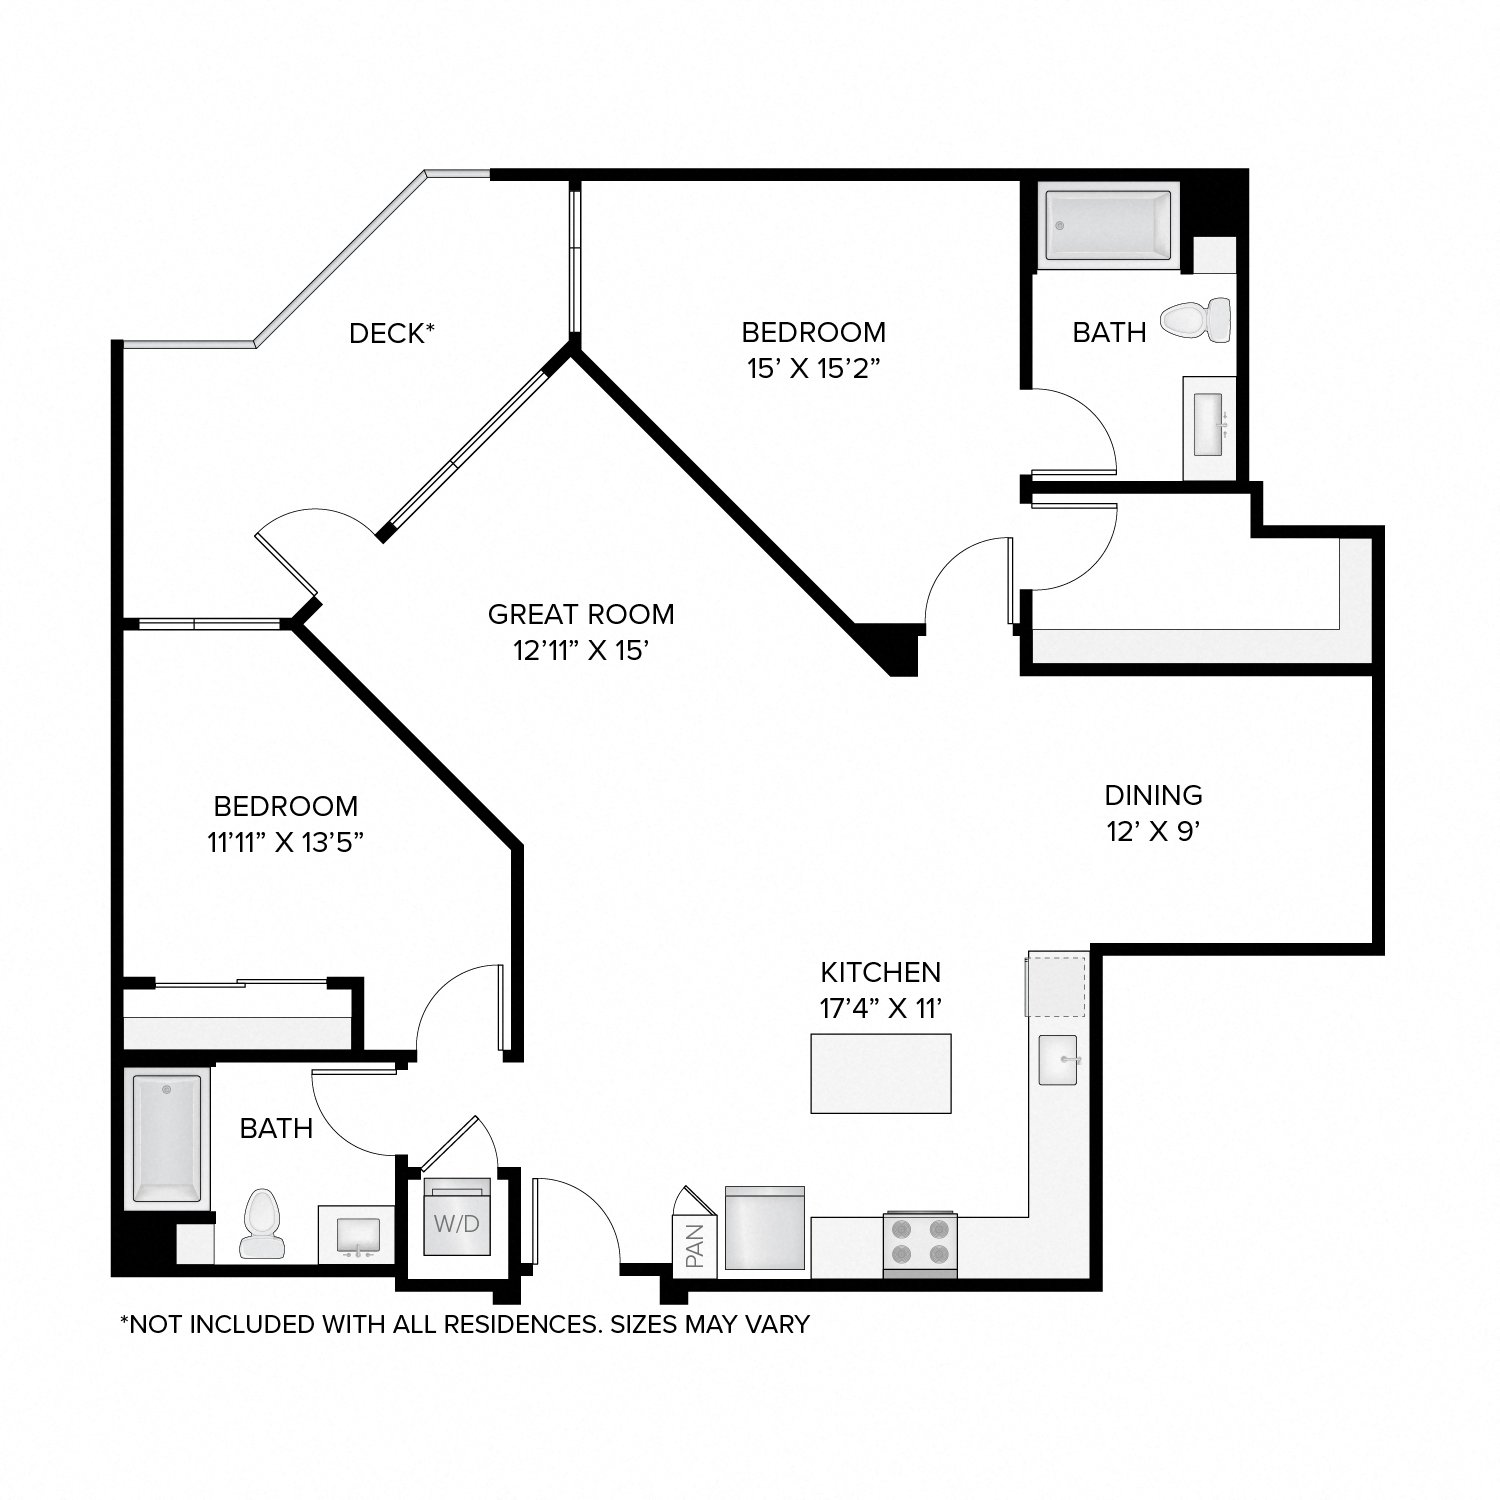 Diagram of the Oak floor plan. Two bedrooms, two bathrooms, an open kitchen, dining, and living area, a washer dryer, and in select residences, a deck.